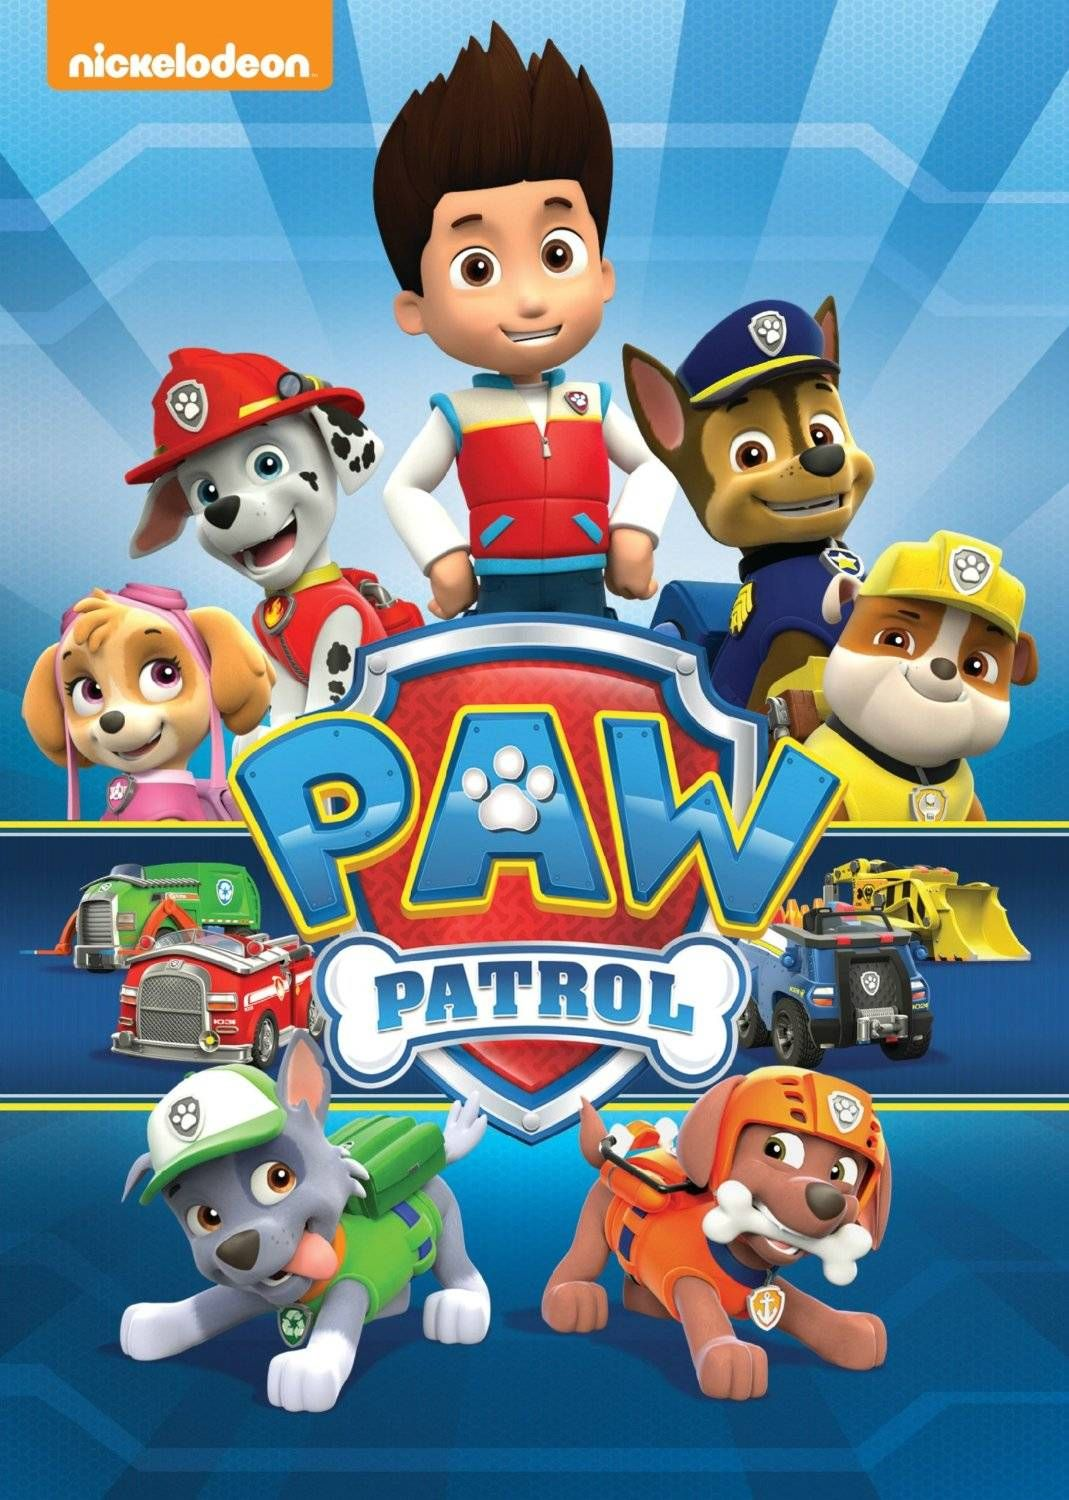 paw patrol images 3086 paw patrol hd wallpaper hd wallpaper and